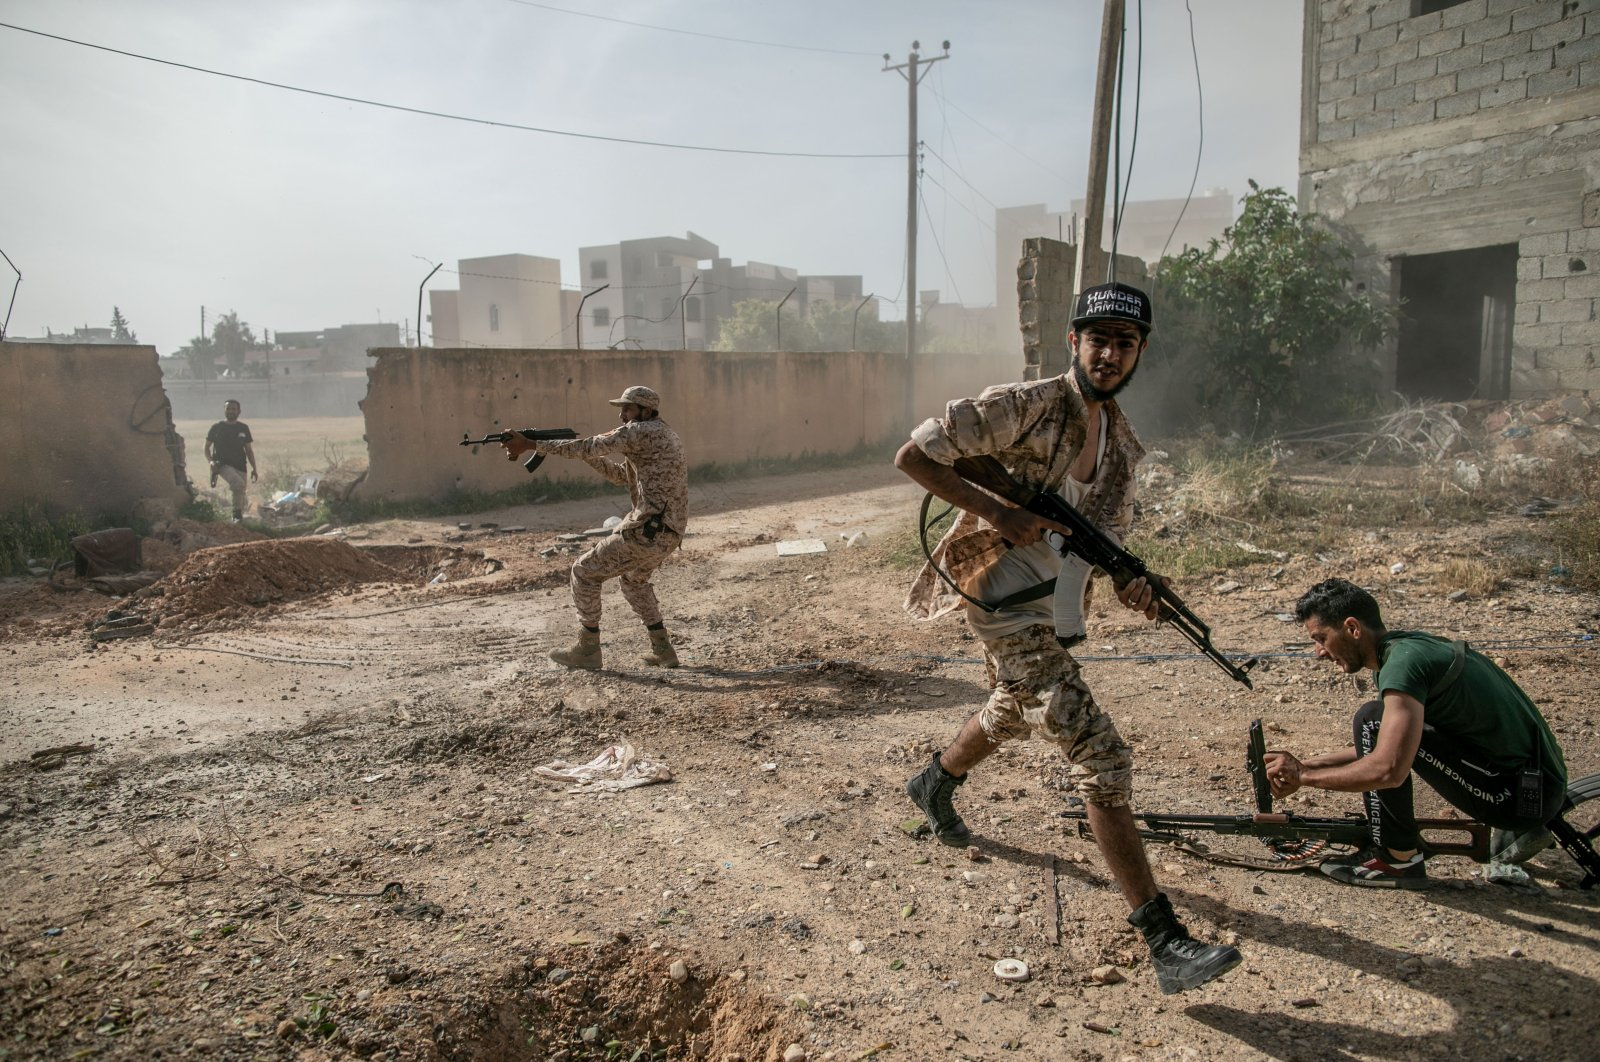 The GNA launched 17 airstrikes to recapture Tarhuna, aiming at Haftar forces and their military vehicles, Sunday, April 19, 2020. (AA)